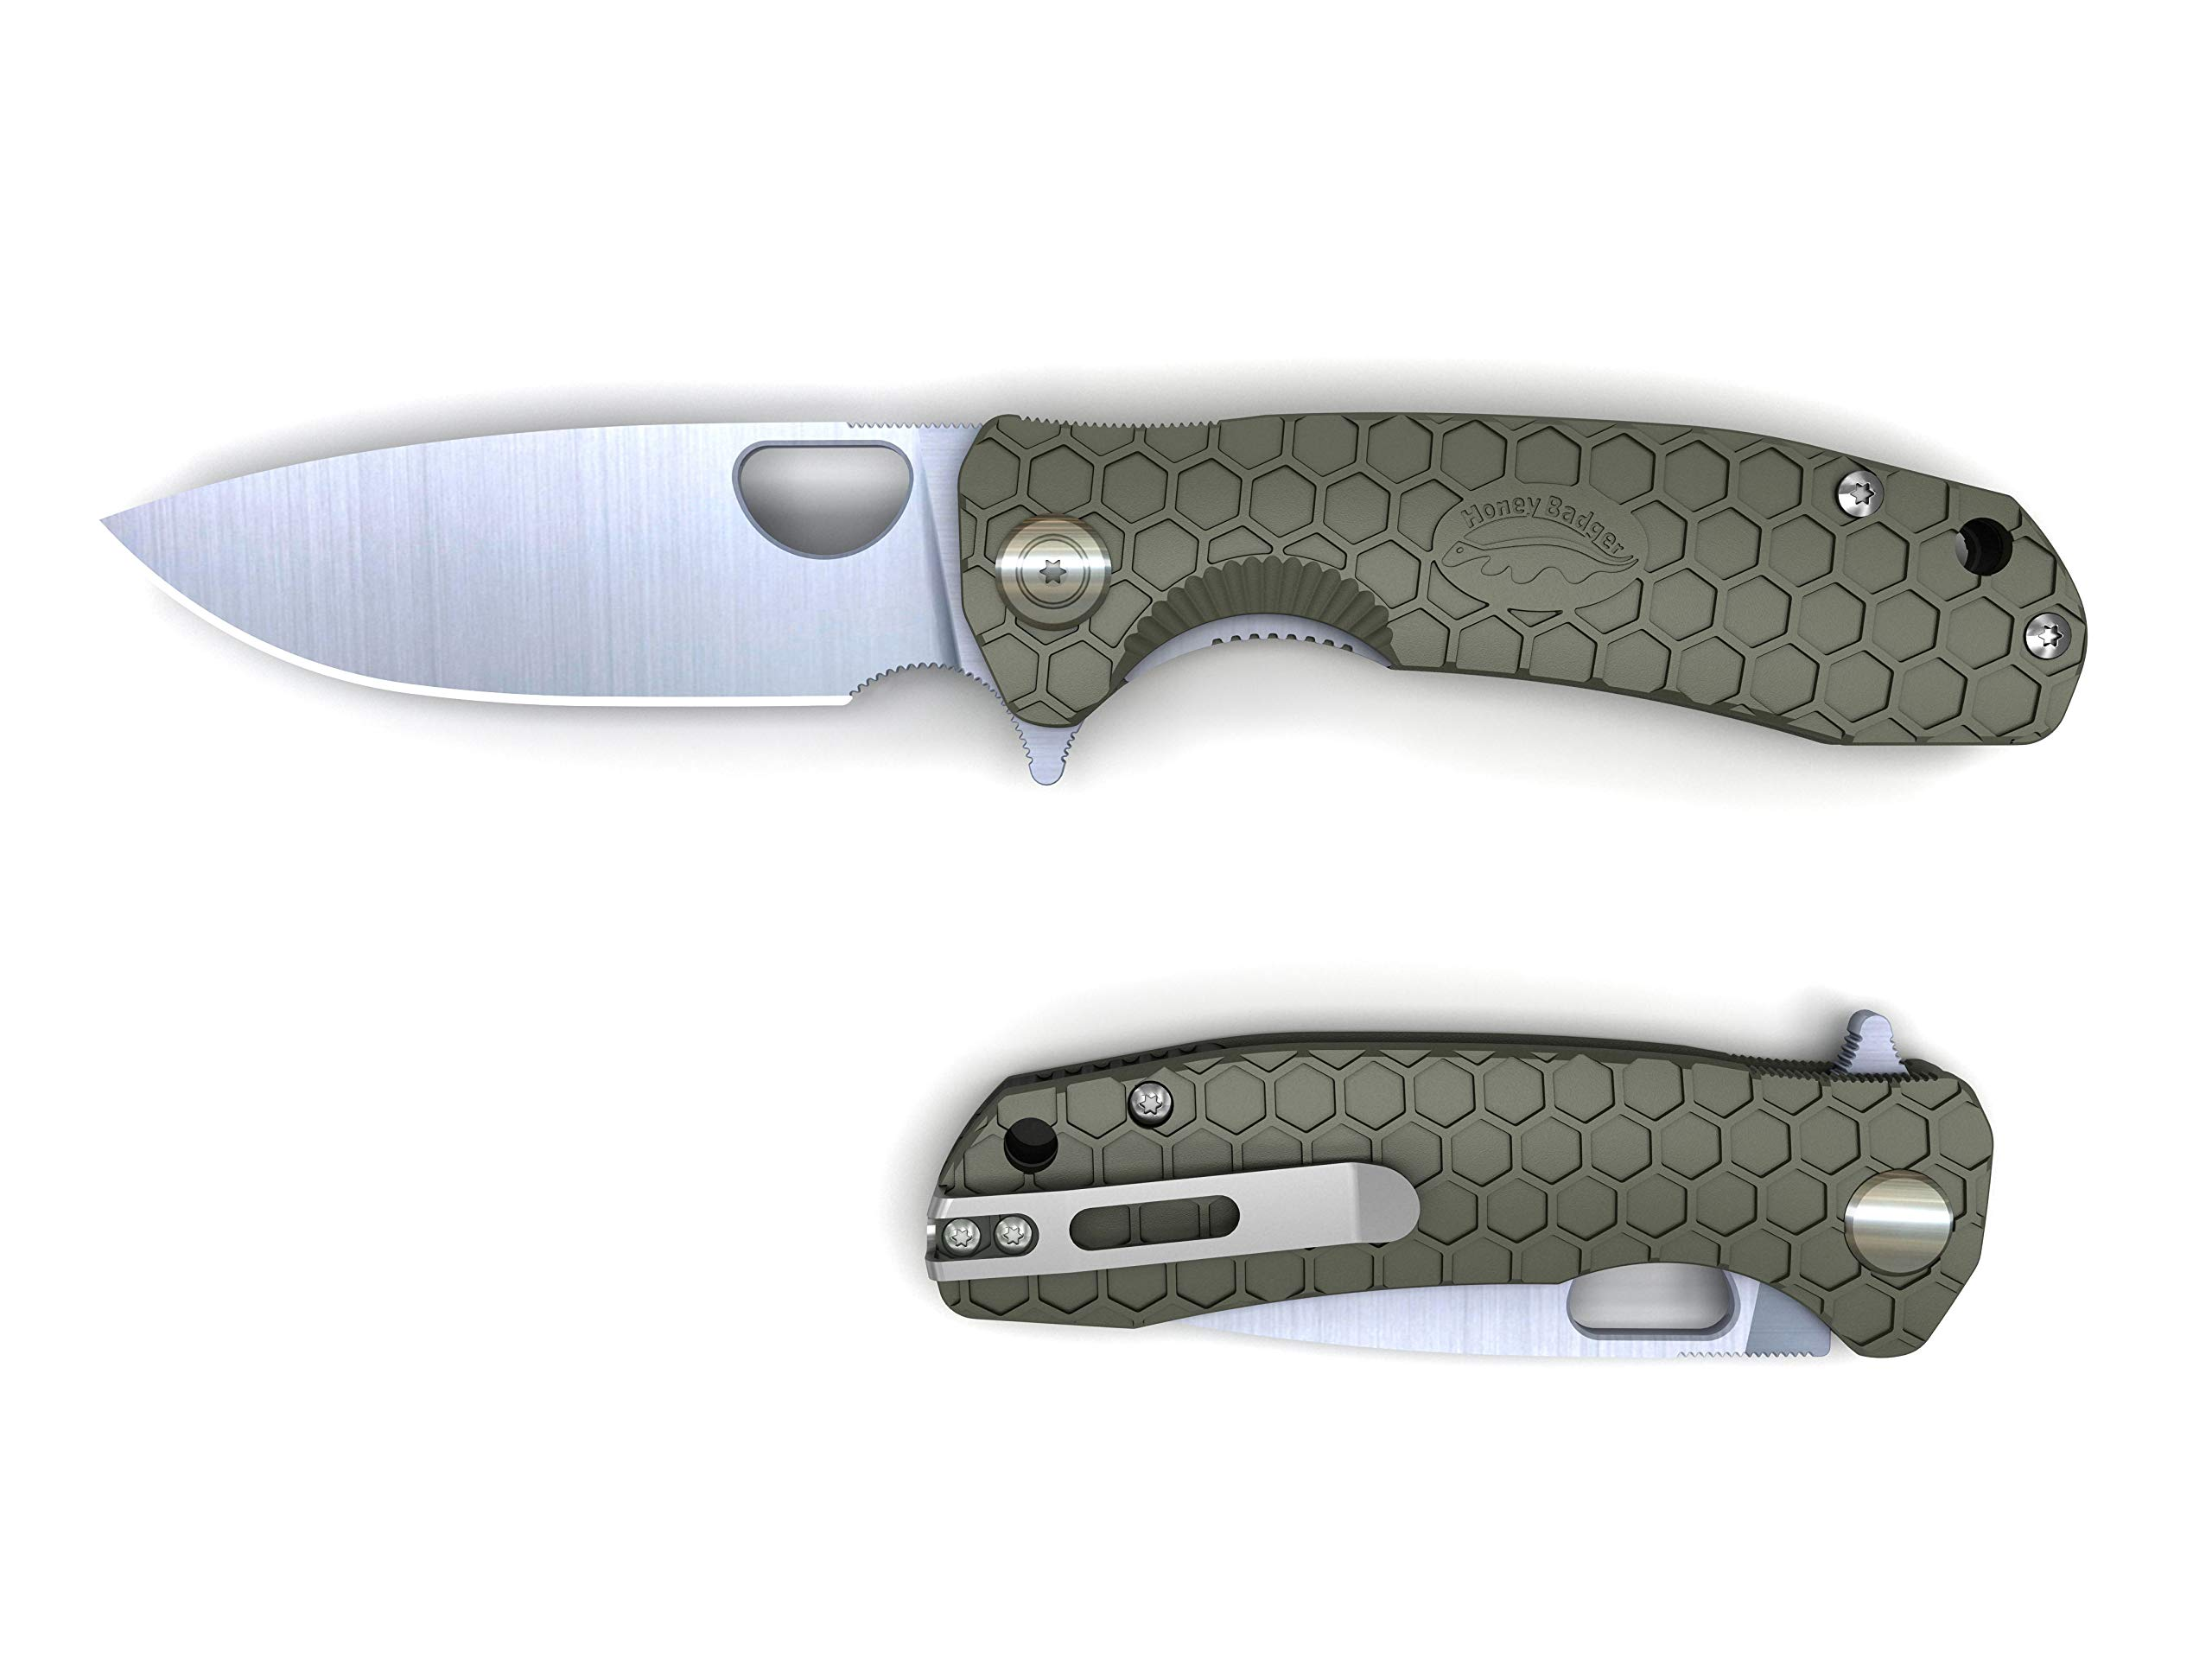 Honey Badger Folding Knife Ball Bearing Flipper Liner 8cr13MOV Blade FRN Handles Deep Pocket Carry in Gift Box incl Torx Wrench, 8.2'' Fullly Open, 4.6'' Closed, 3.63'' Blade, 3.98 Oz, Large, Green